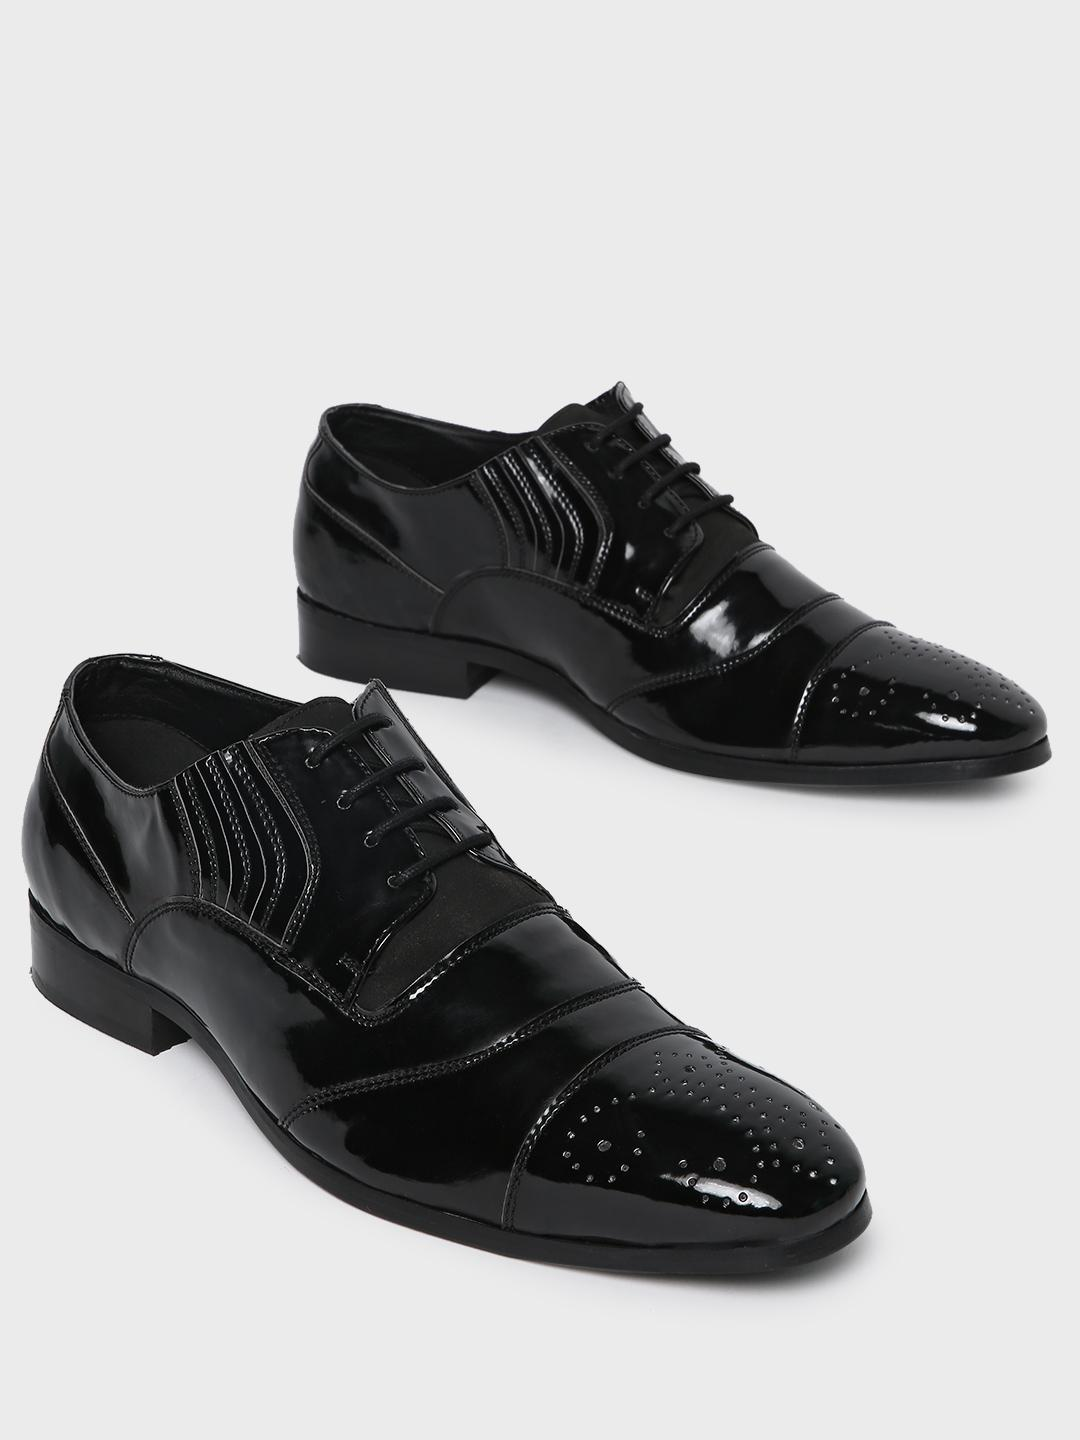 Corso Venezia Black Toe Punches Panelled Oxford Shoes 1